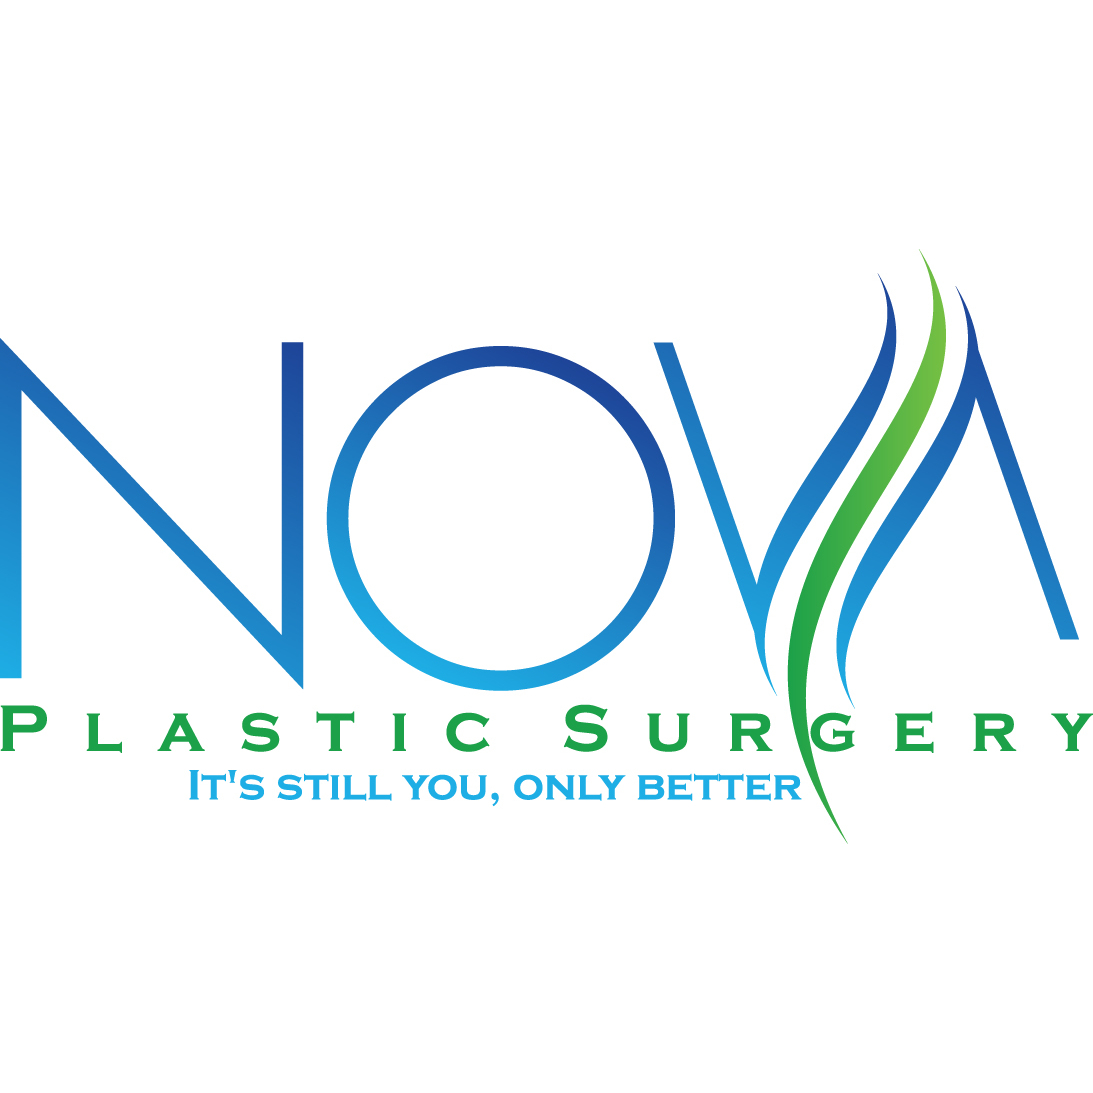 nova plastic surgery photo - 1